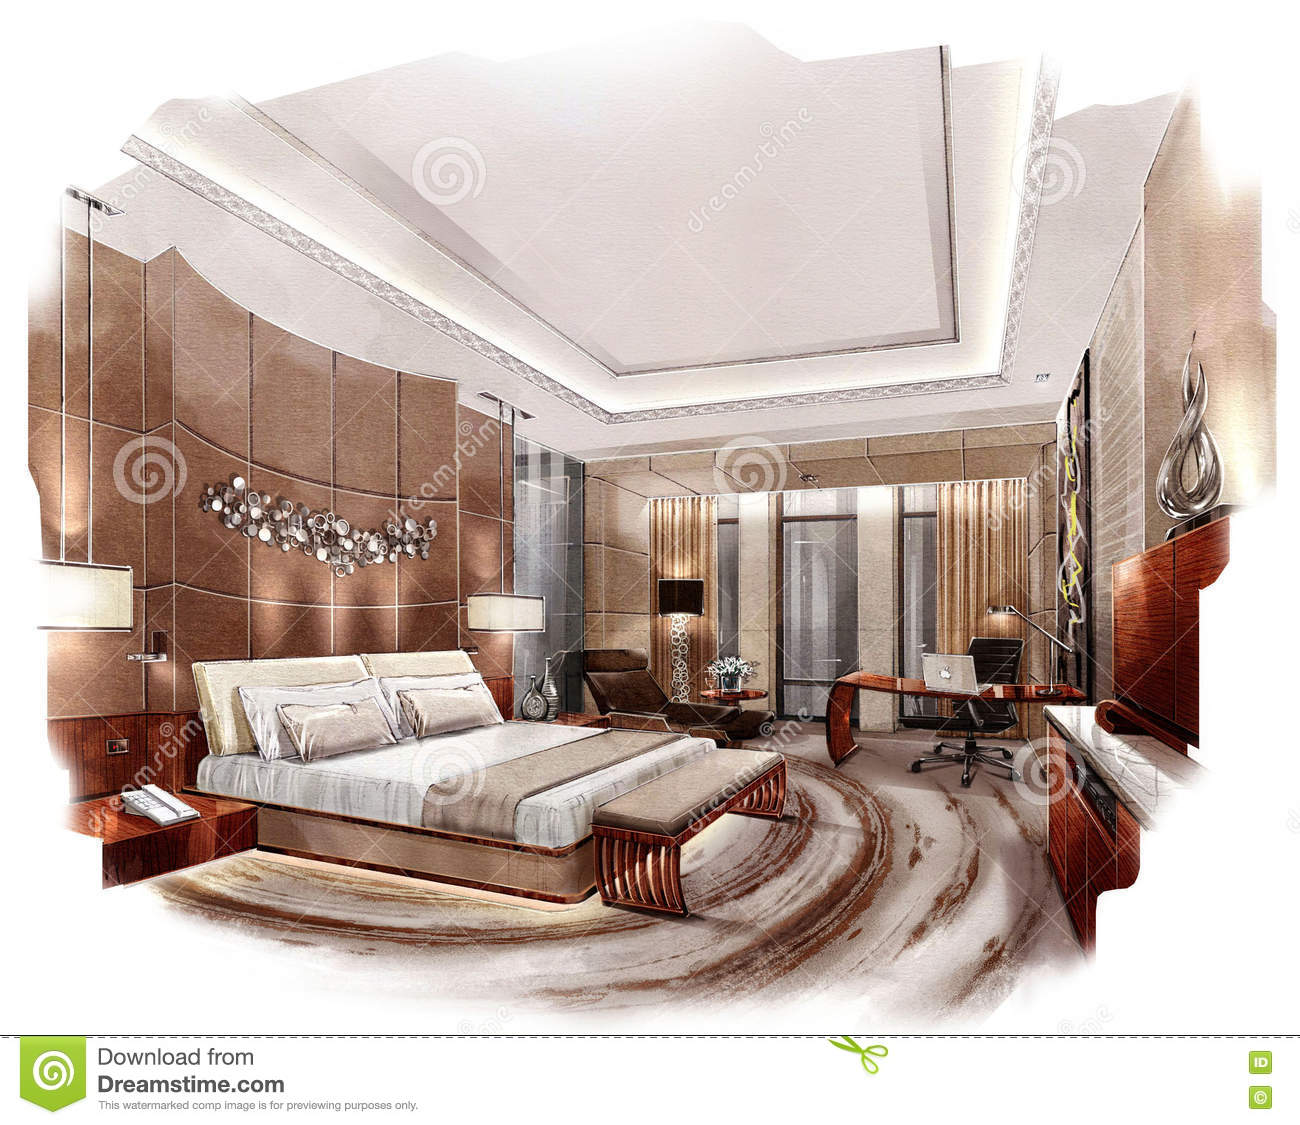 Sketch Perspective Interior Bedroom Into A Watercolor On